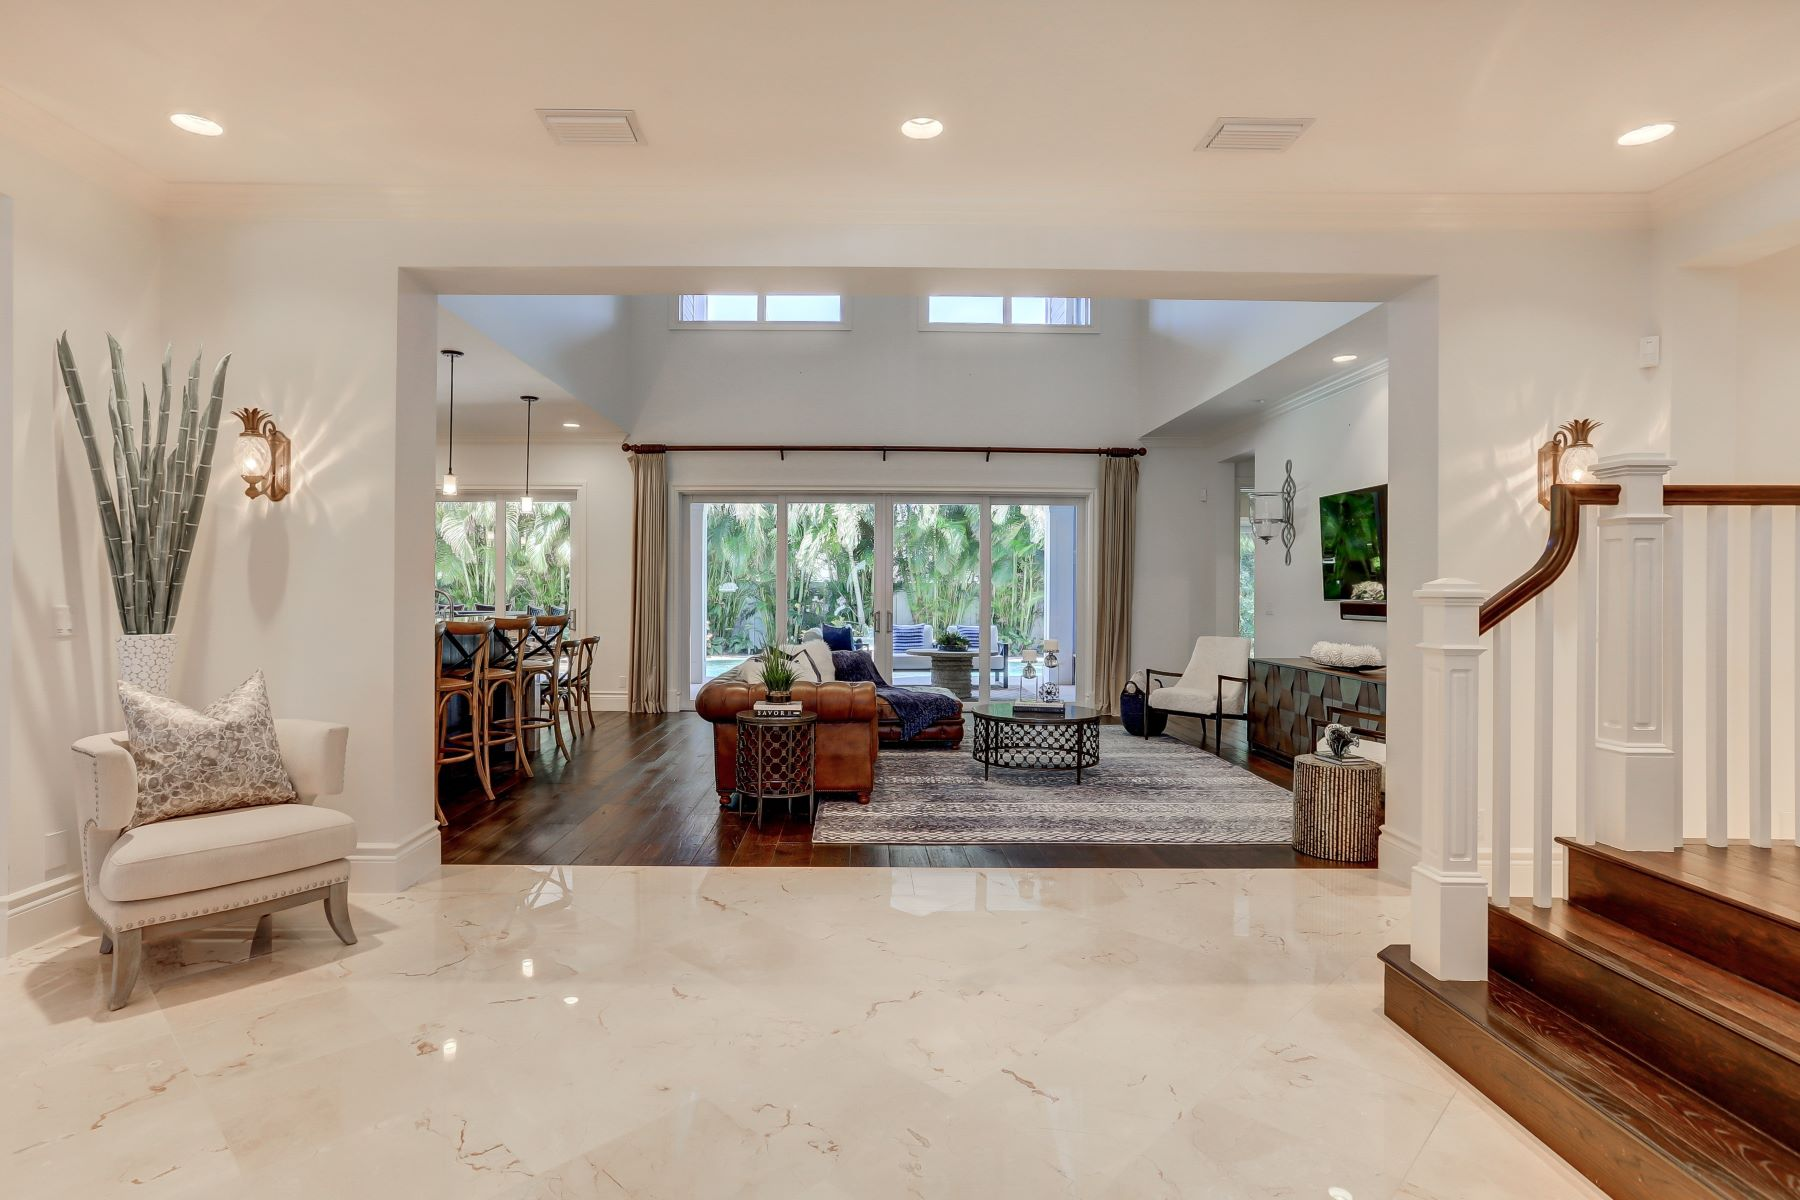 Single Family Homes for Active at 301 Ne 5th Street, Boca Raton, FL 301 Ne 5th Street Boca Raton, Florida 33432 United States